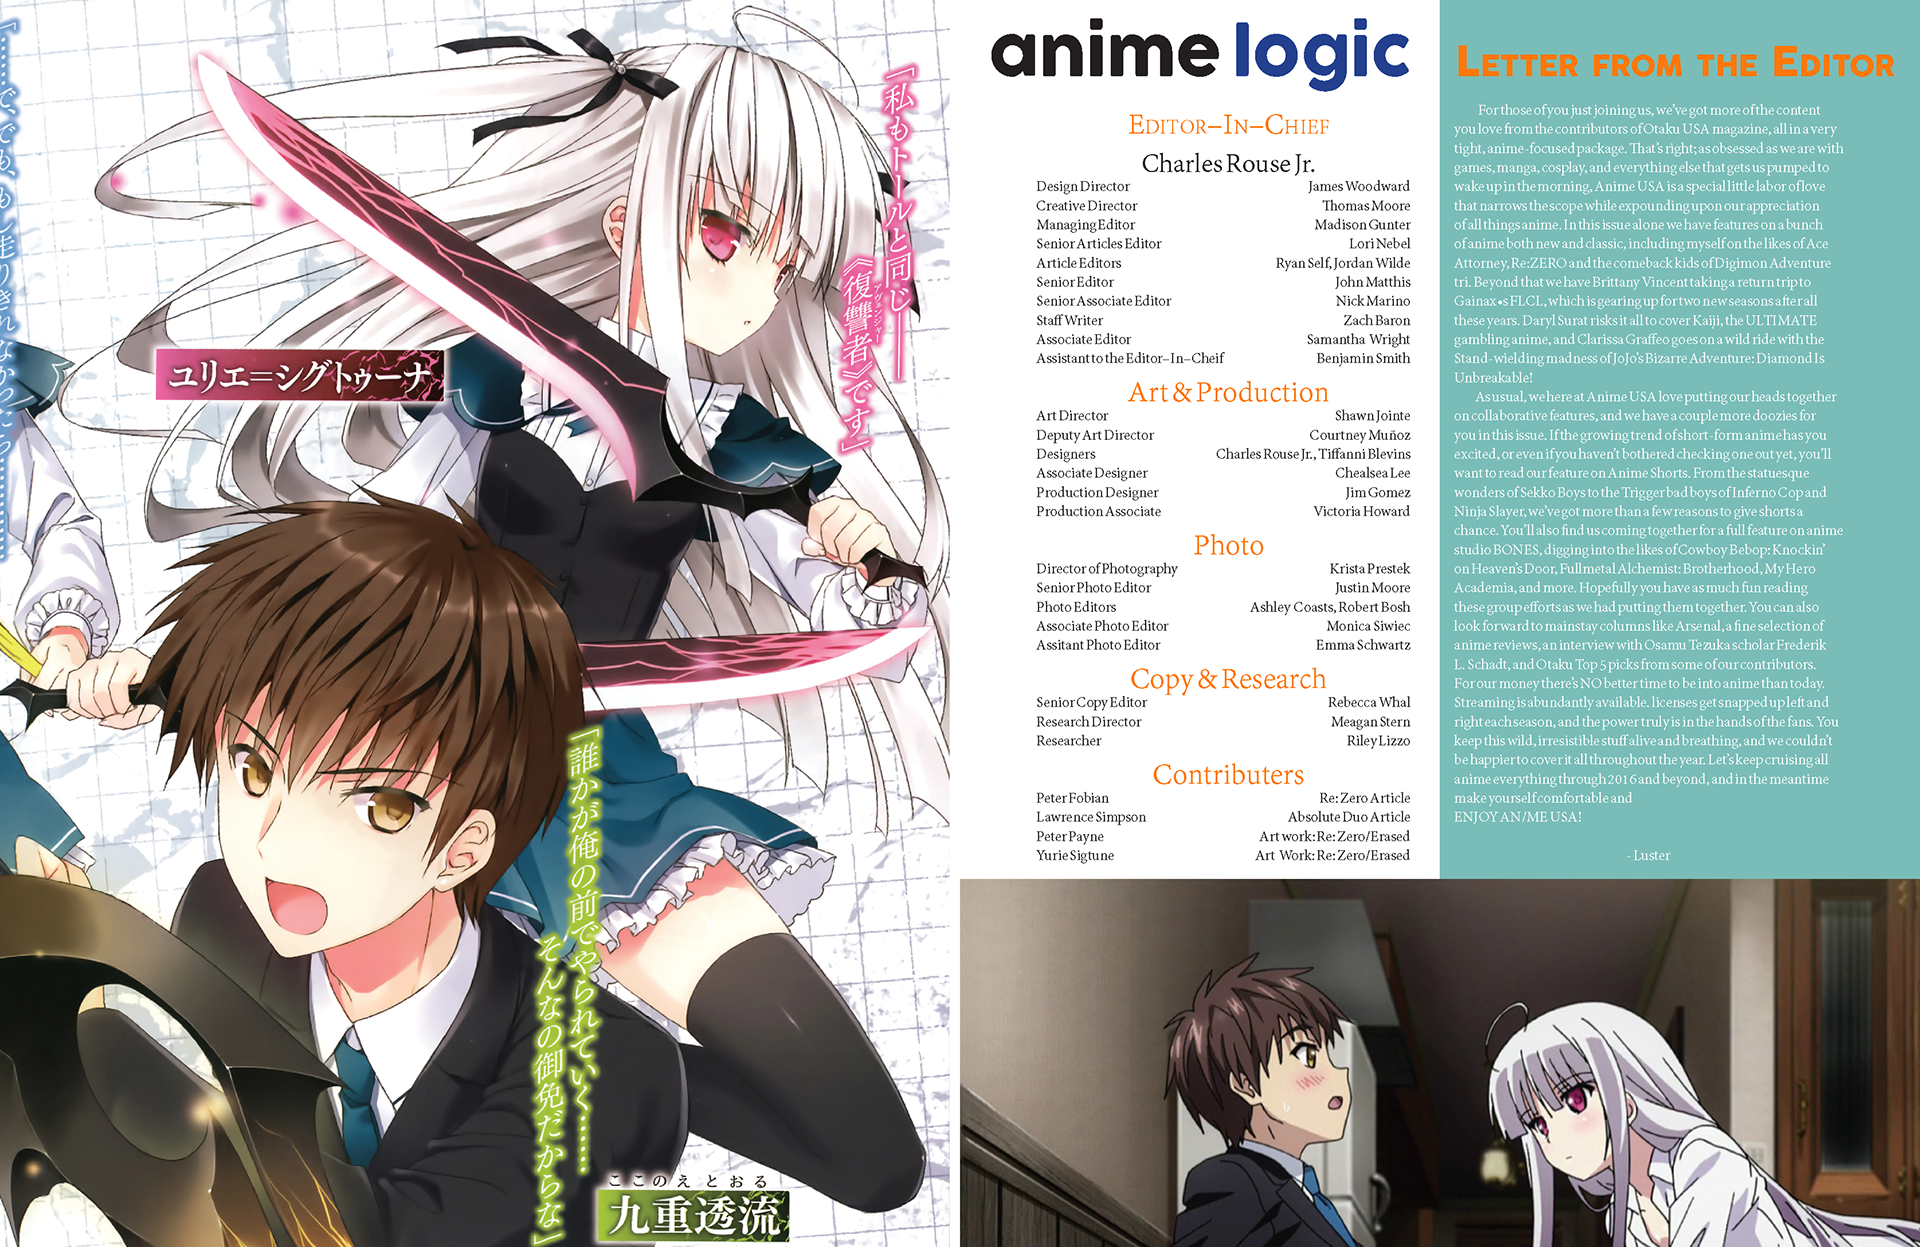 A magazine layout design for anime